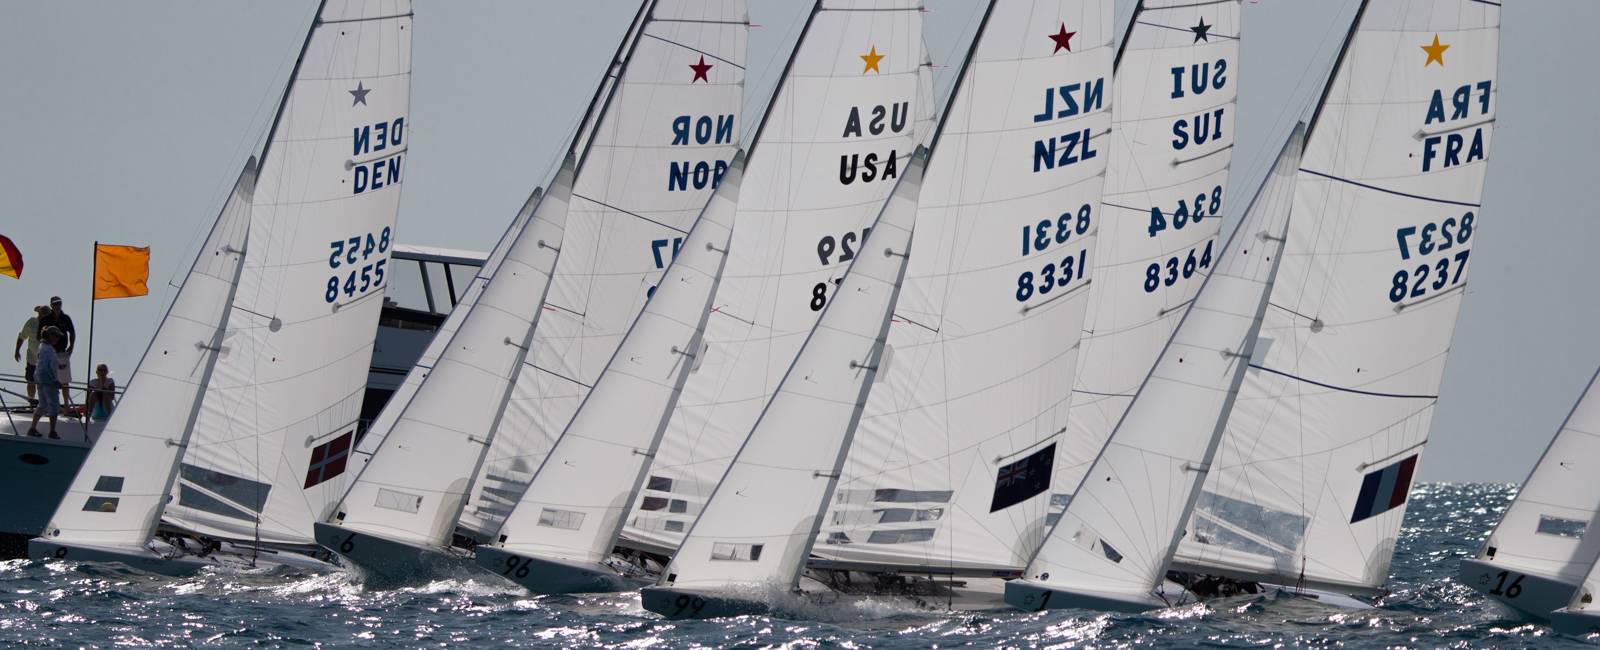 Start Race Star Sailors League